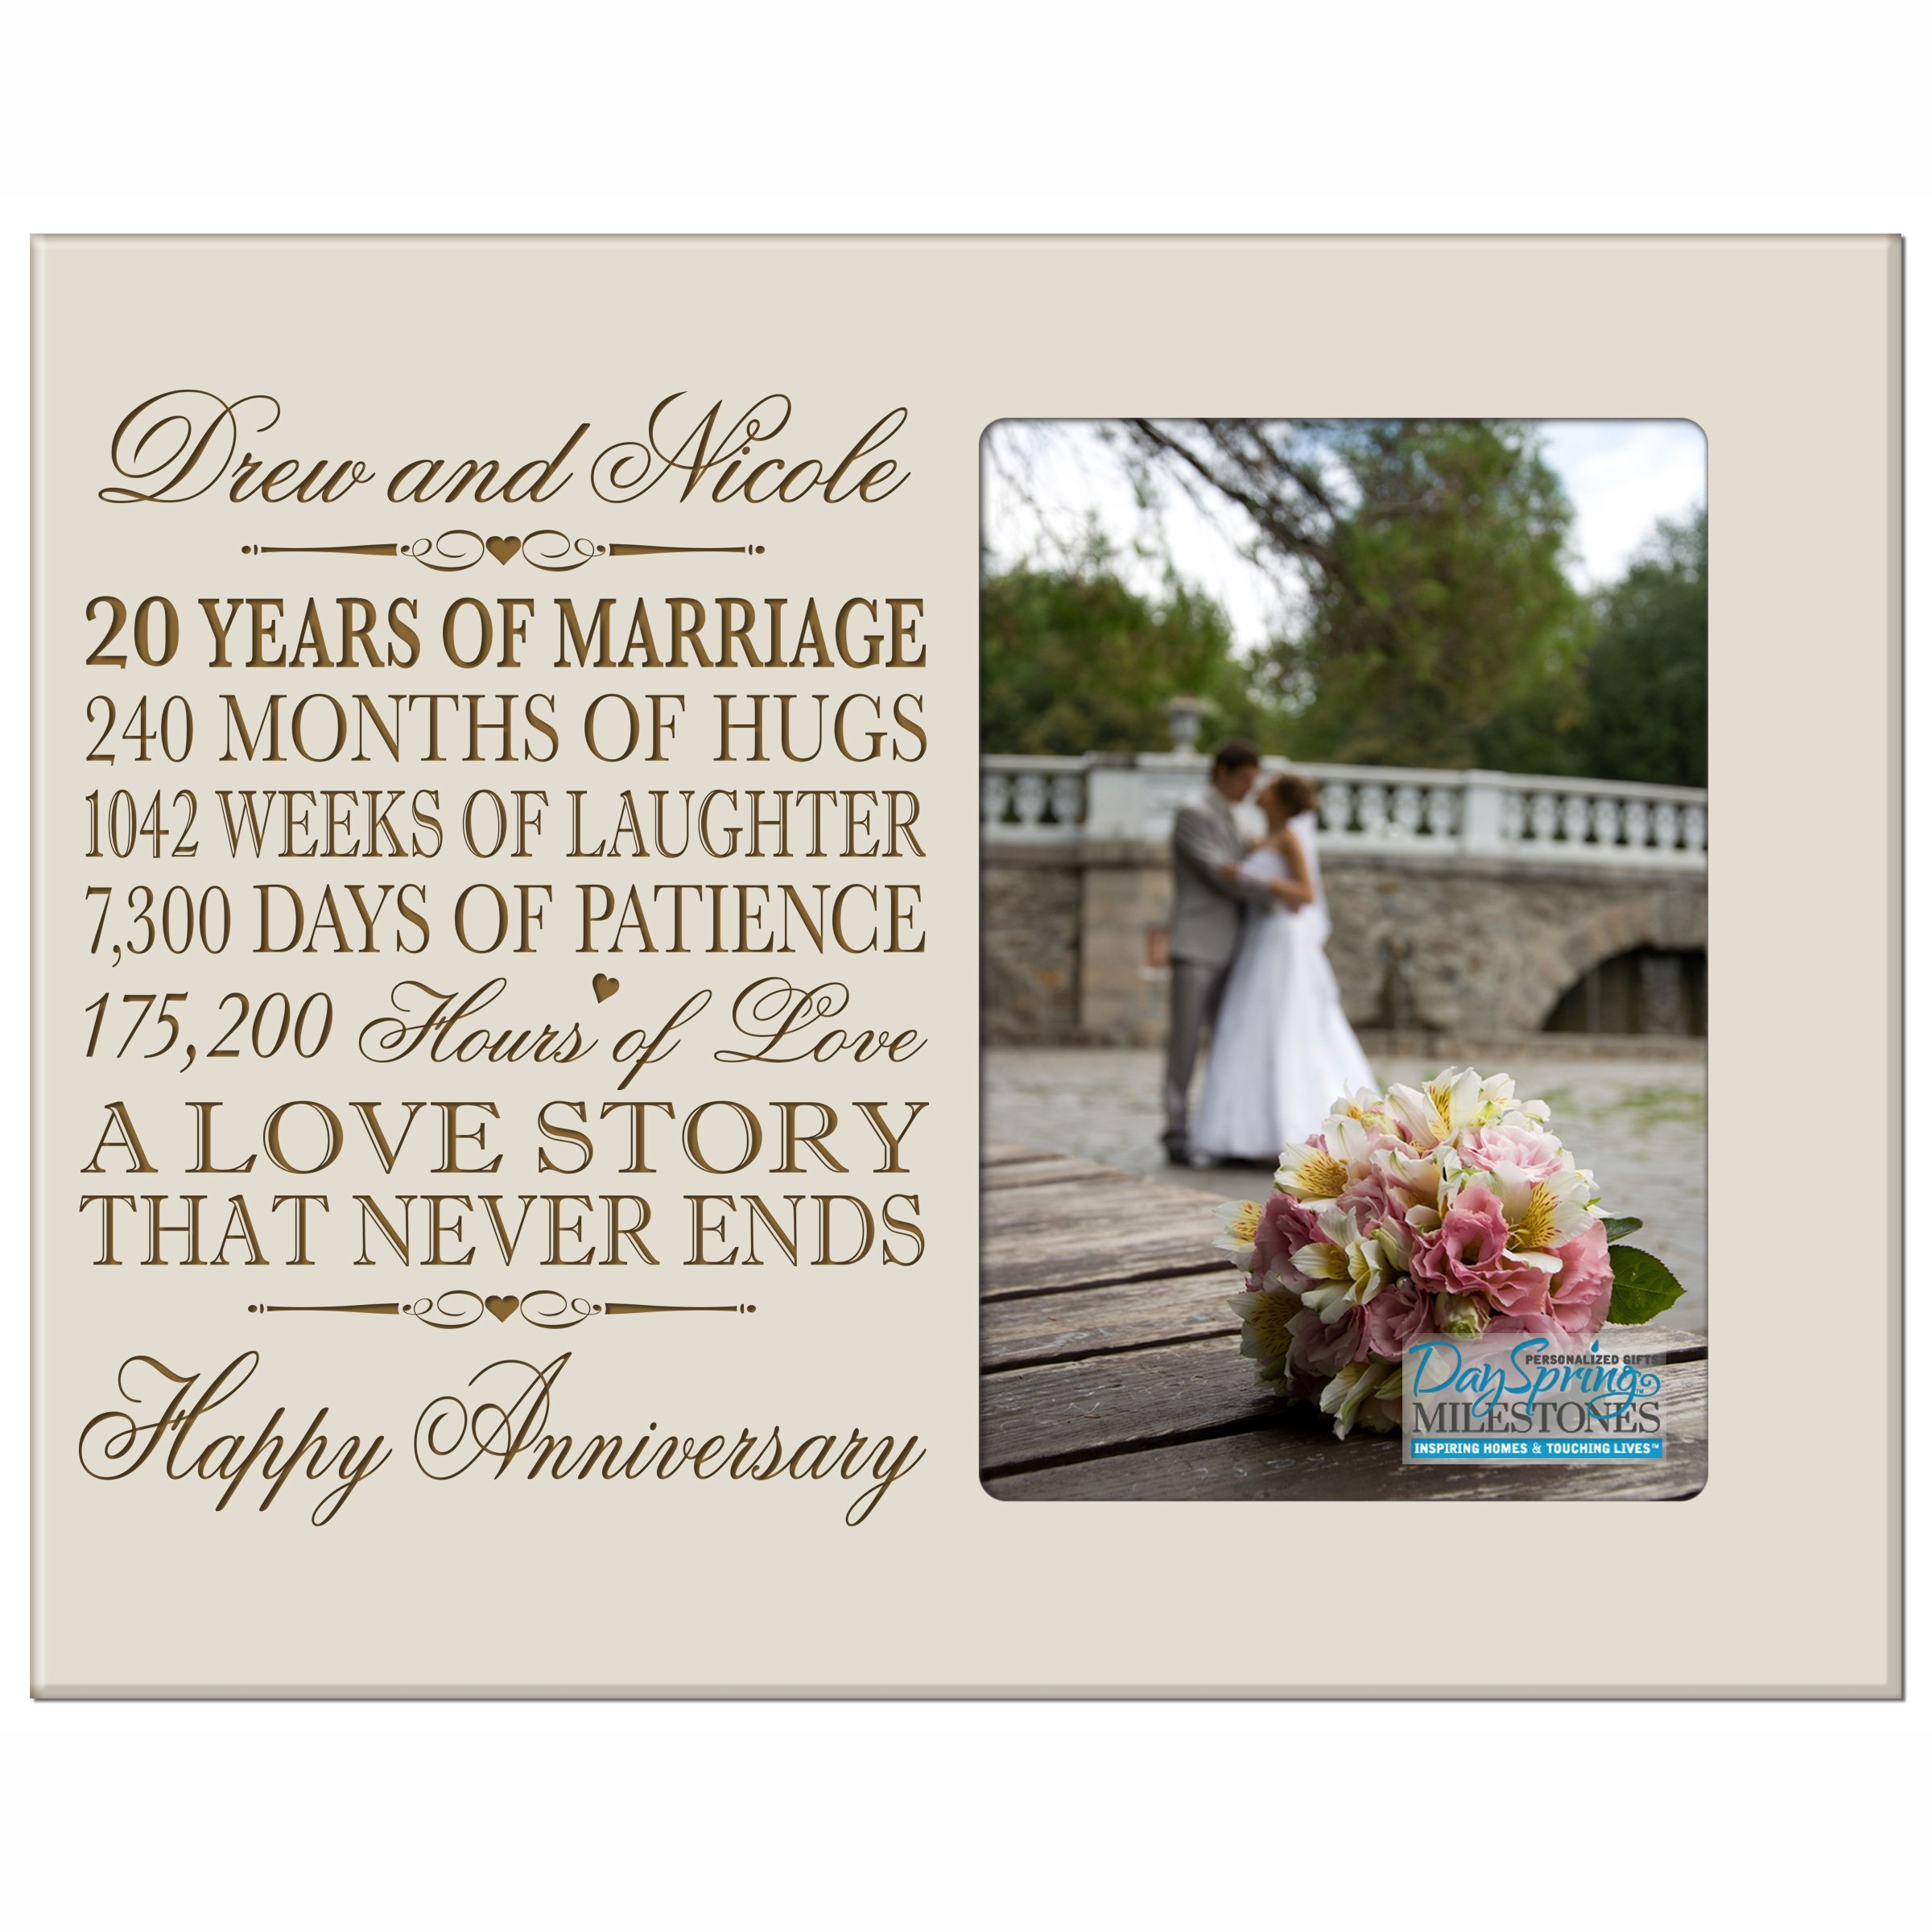 Buy Personalized Twenty Year Anniversary Gift For Her Him Couple